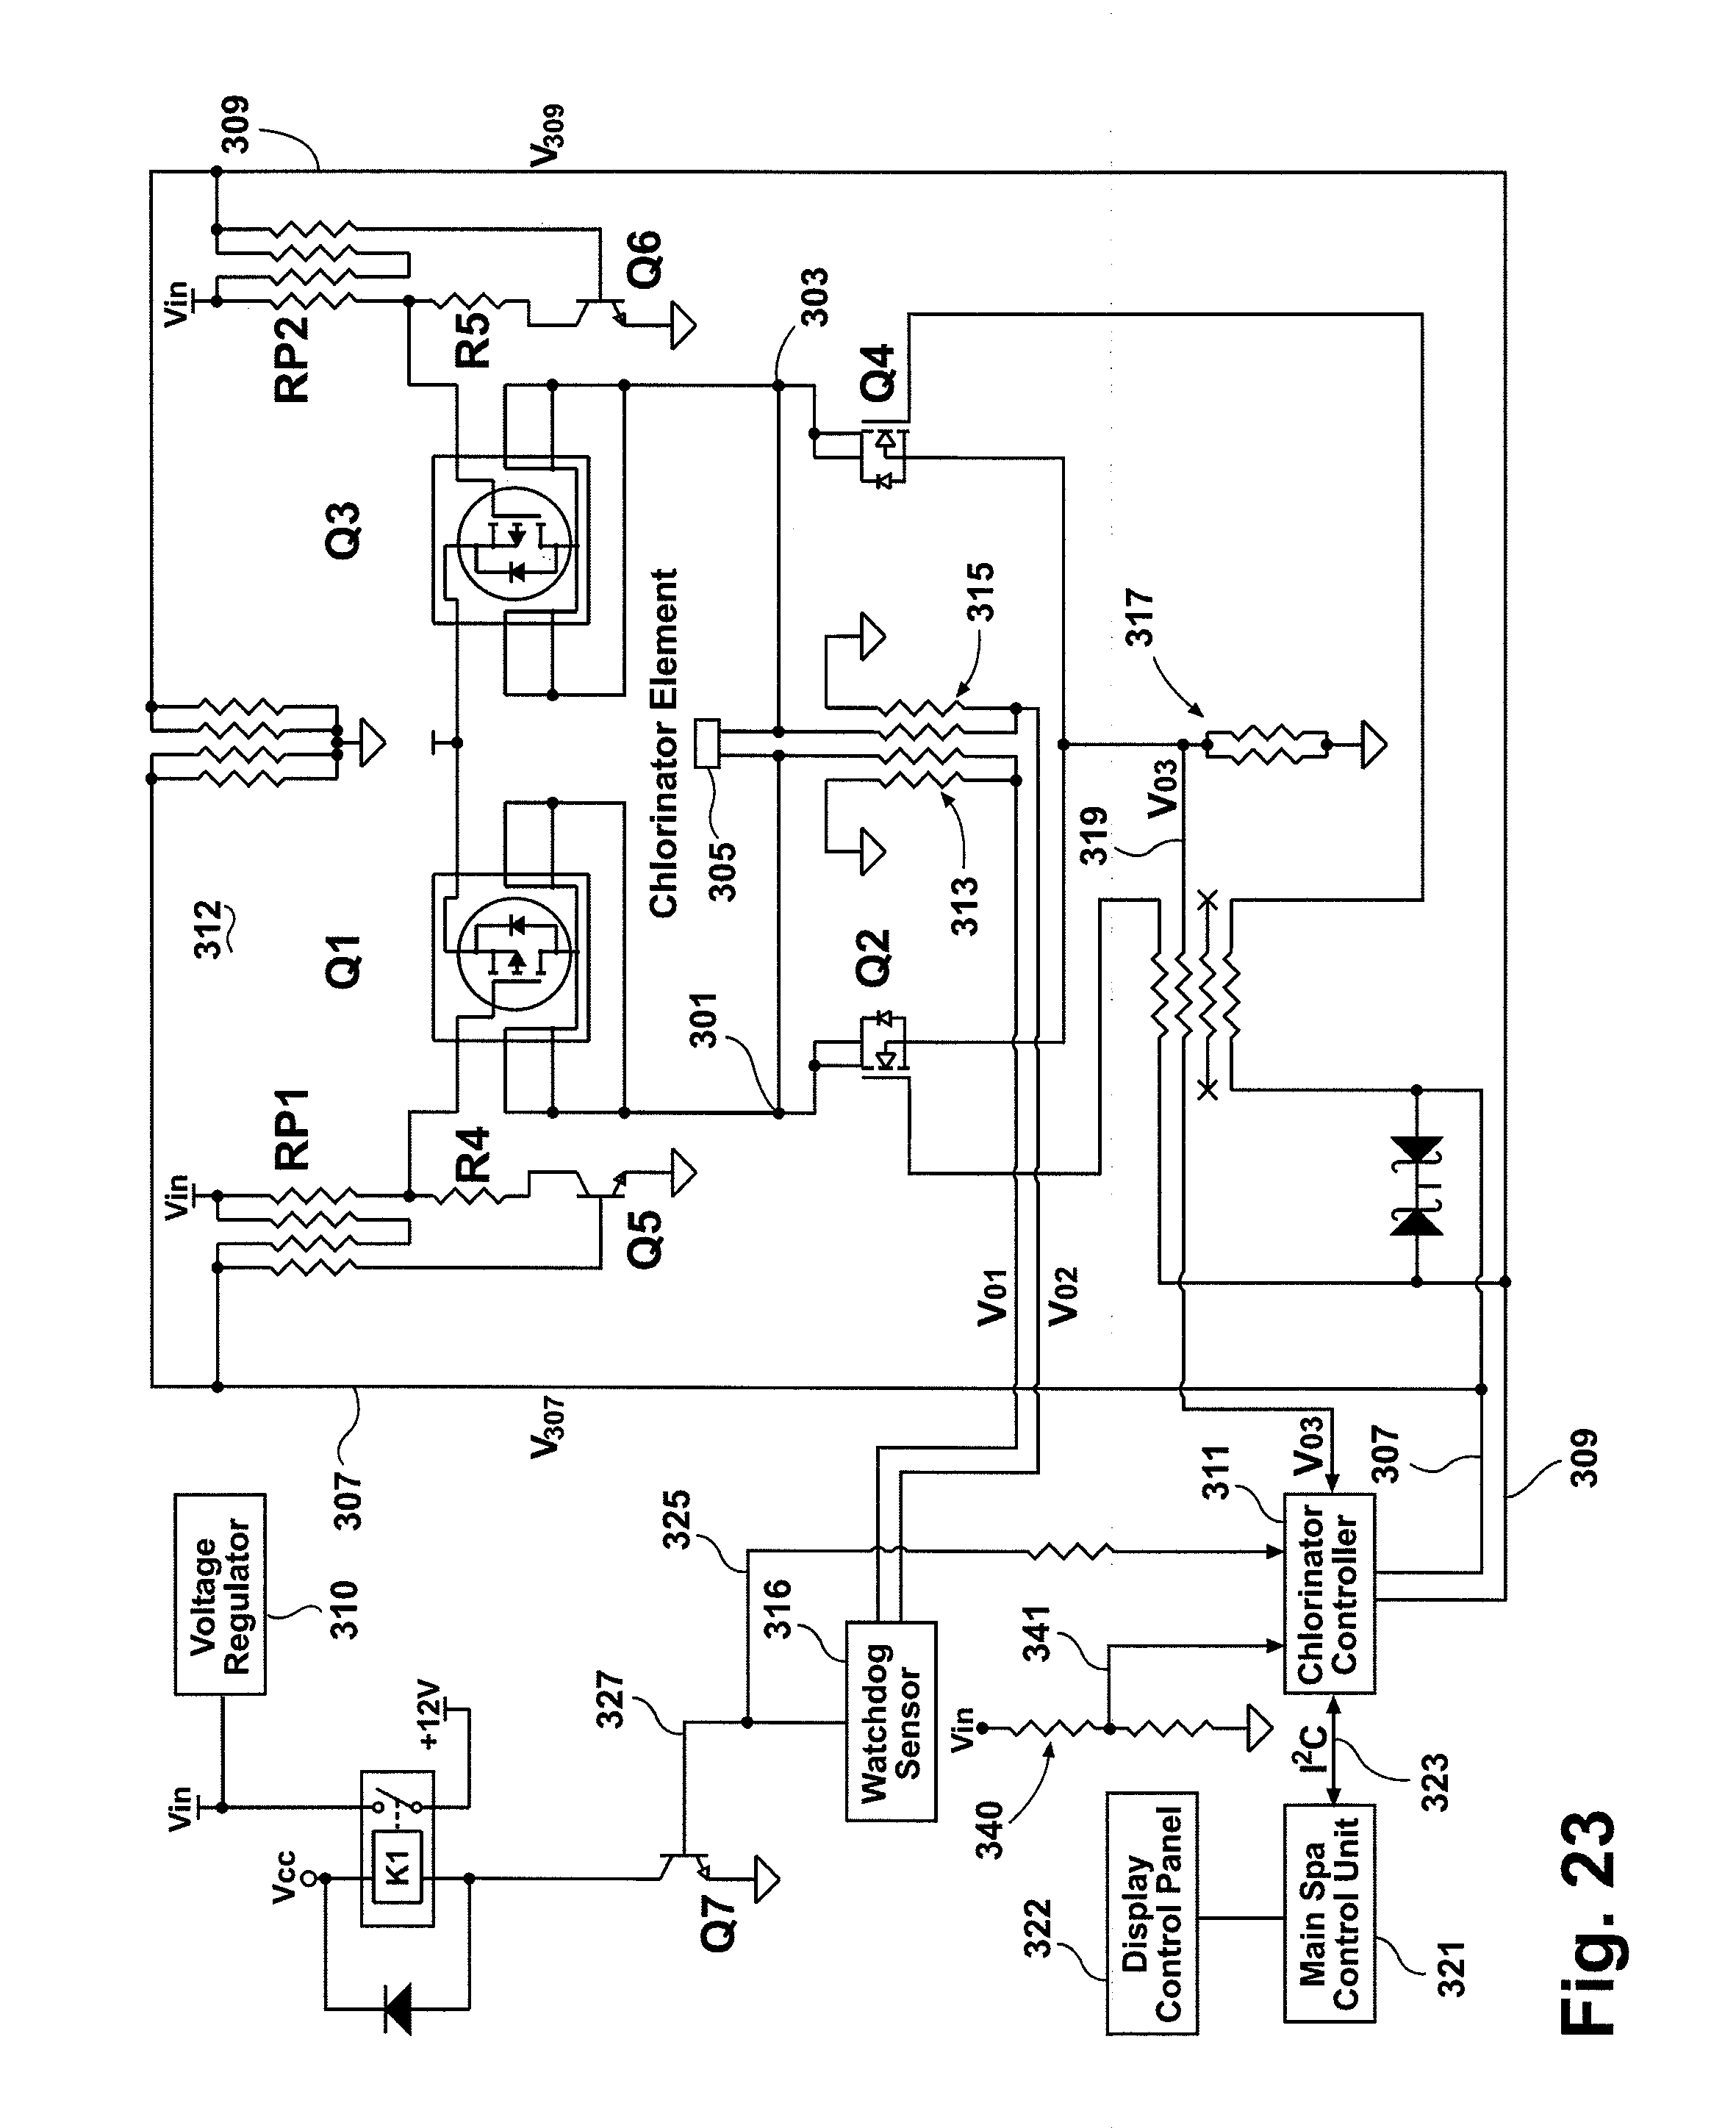 patent us20110253637 - spa water sanitizing system